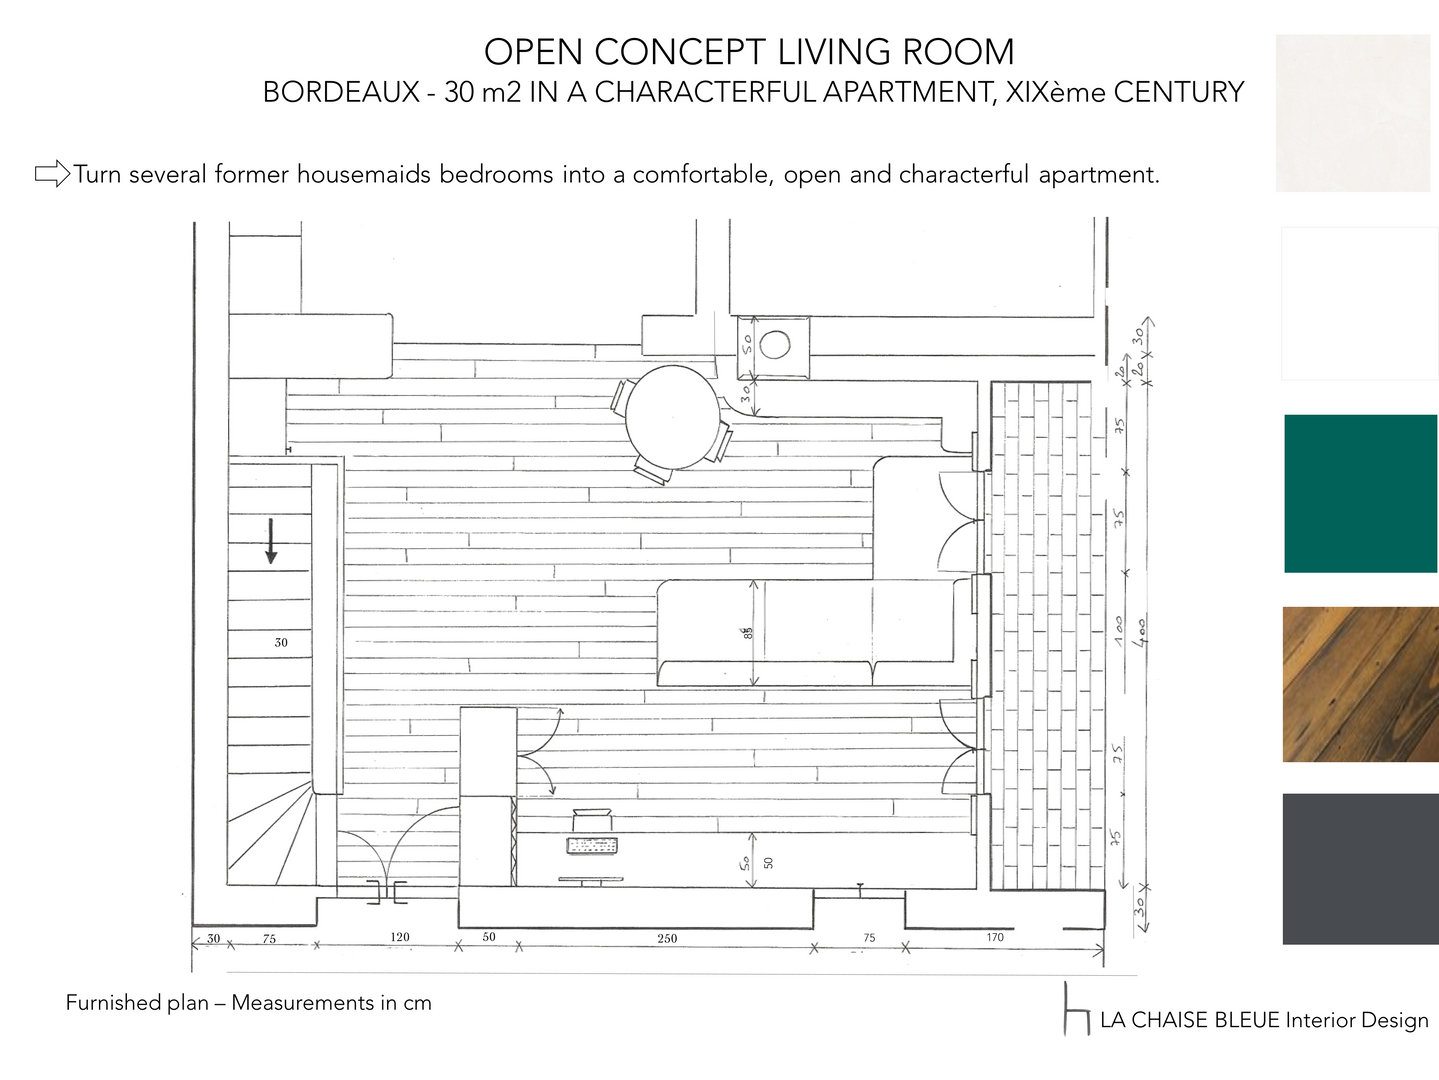 BORDEAUXX Plan furnished 21 01 19.png